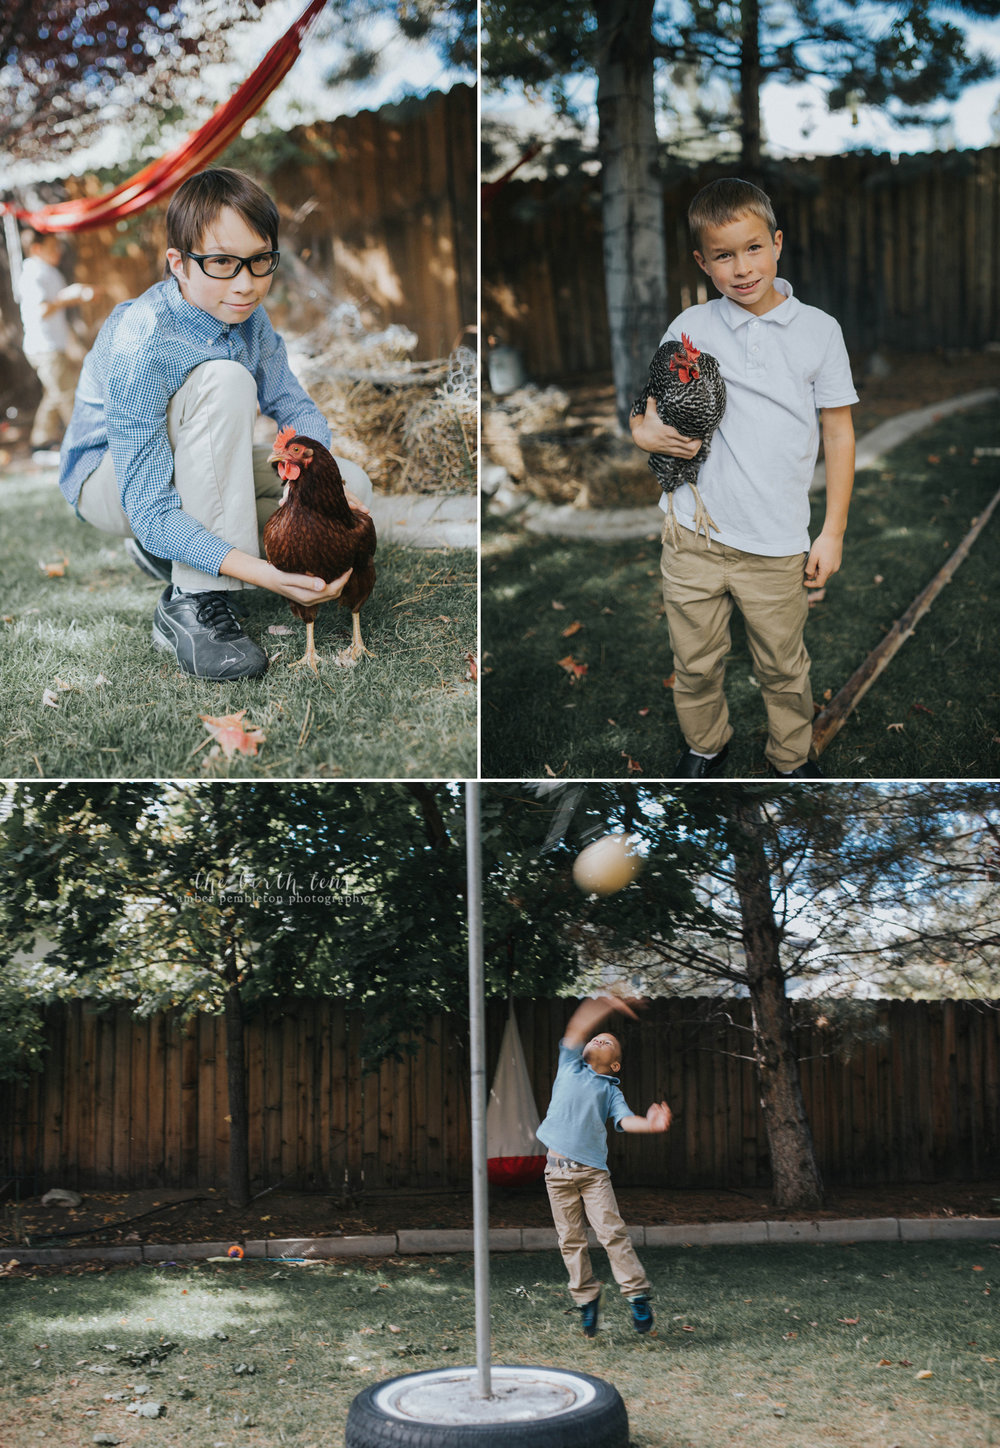 boys-playing-at-home-reno-tahoe.jpg